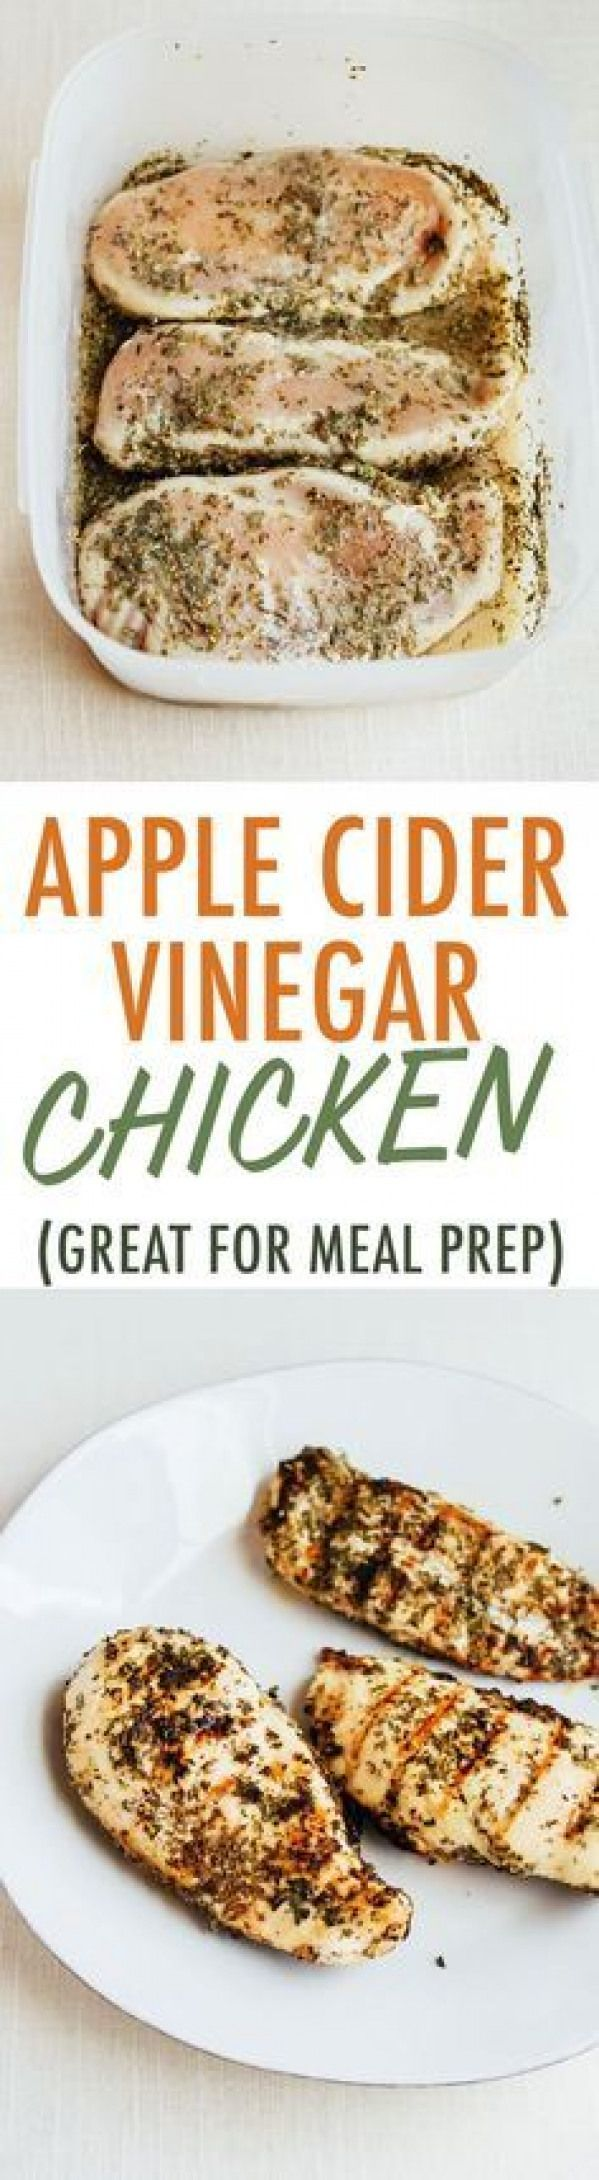 This simple apple cider vinegar chicken is my go-to recipe when making grilled chicken because it's easy versatile and delicious! Enjoy right away or use the grilled chicken for meal prep throughout the week. #ChickenHouses #appleciderchicken This simple apple cider vinegar chicken is my go-to recipe when making grilled chicken because it's easy versatile and delicious! Enjoy right away or use the grilled chicken for meal prep throughout the week. #ChickenHouses #appleciderchicken